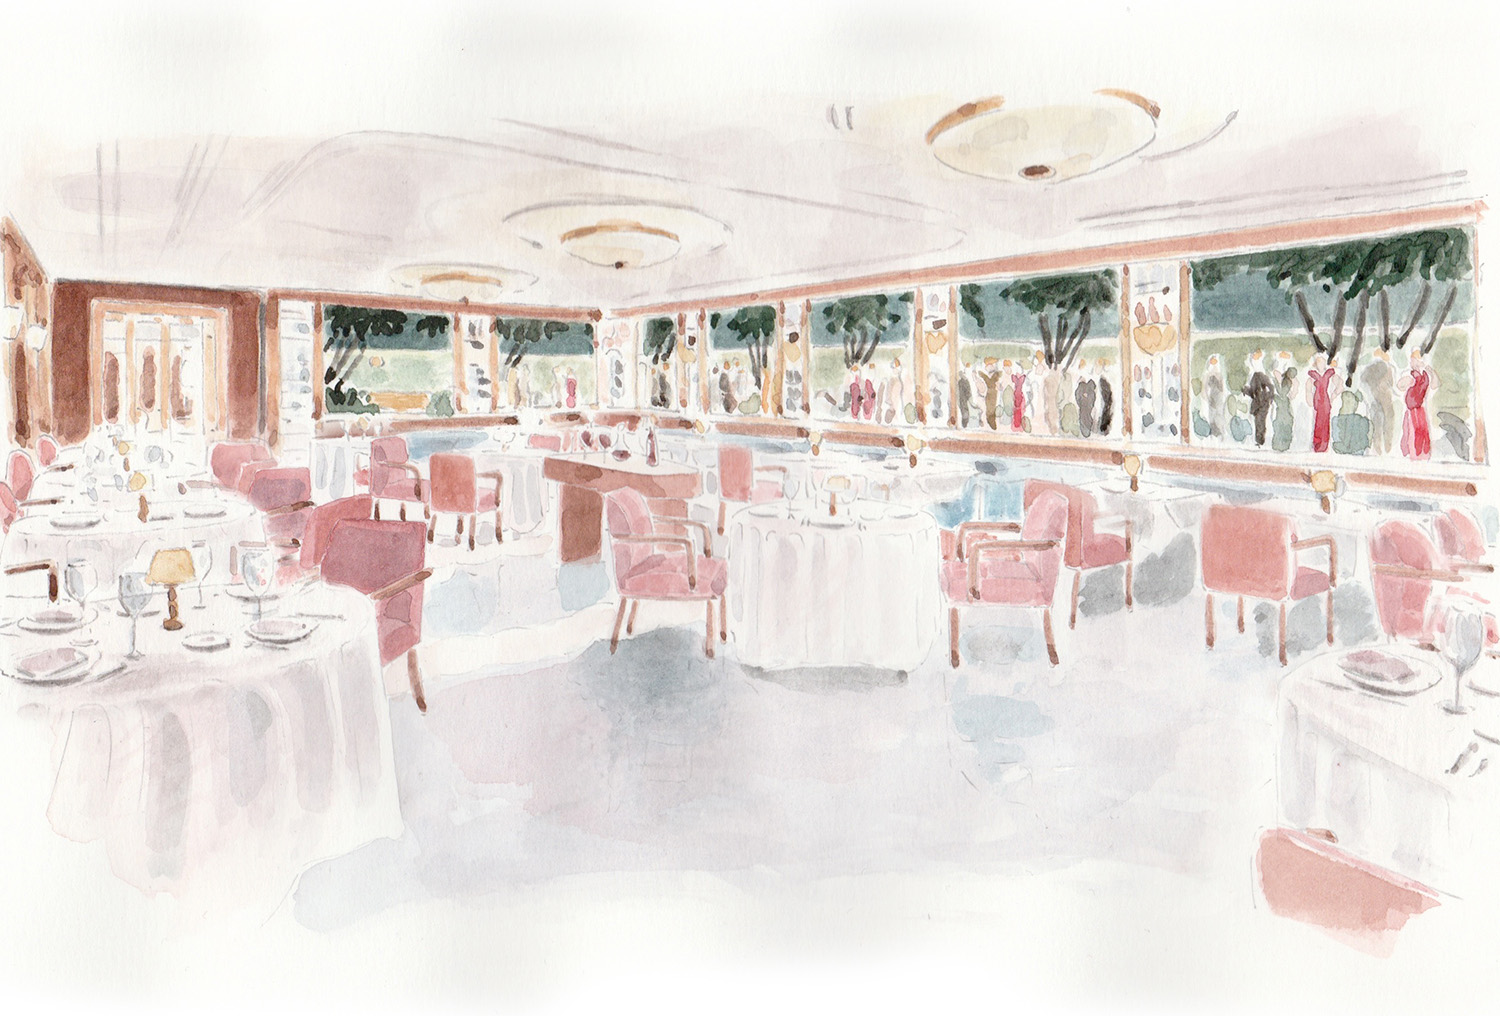 Watercolor of the interior of The Surf Club Restaurant